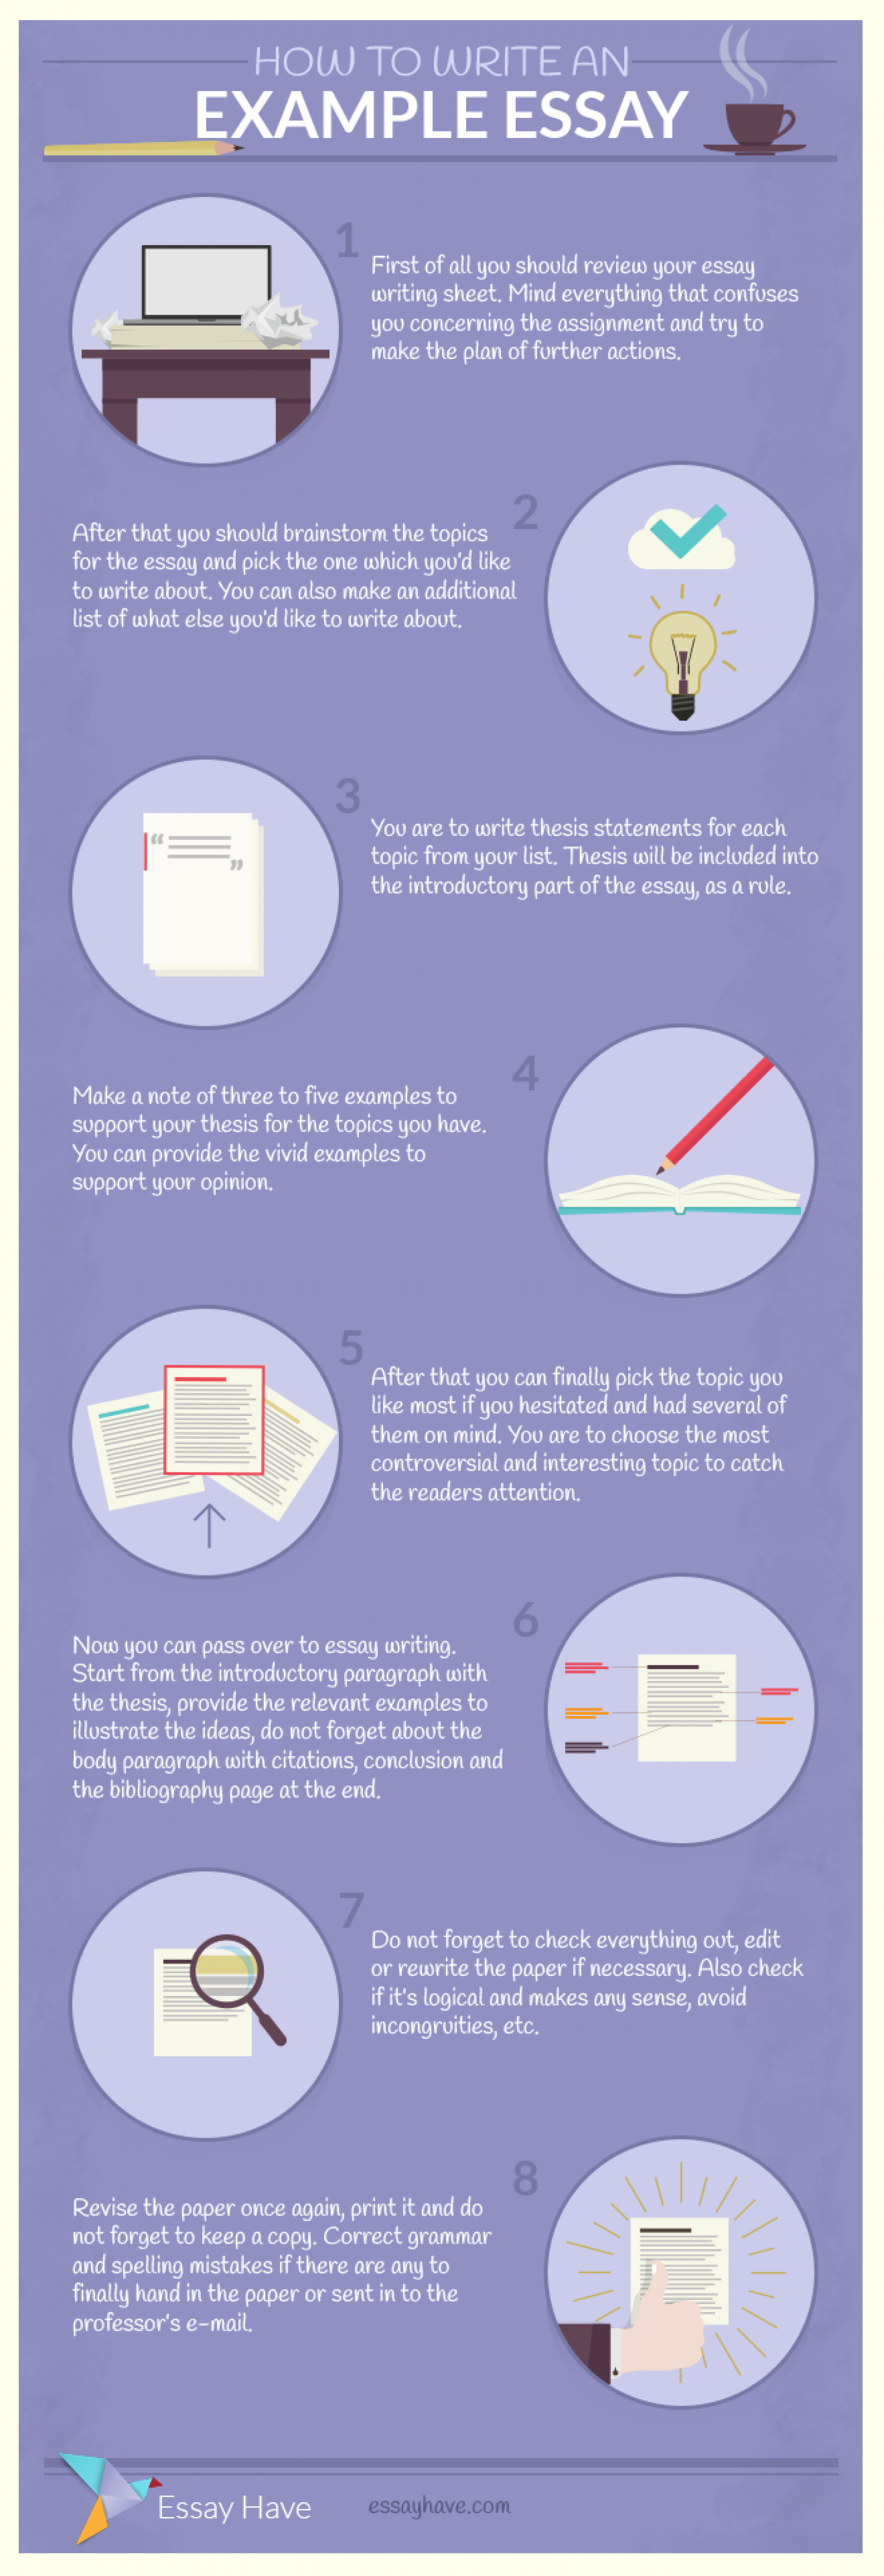 How To Write An Example Essay Infographic